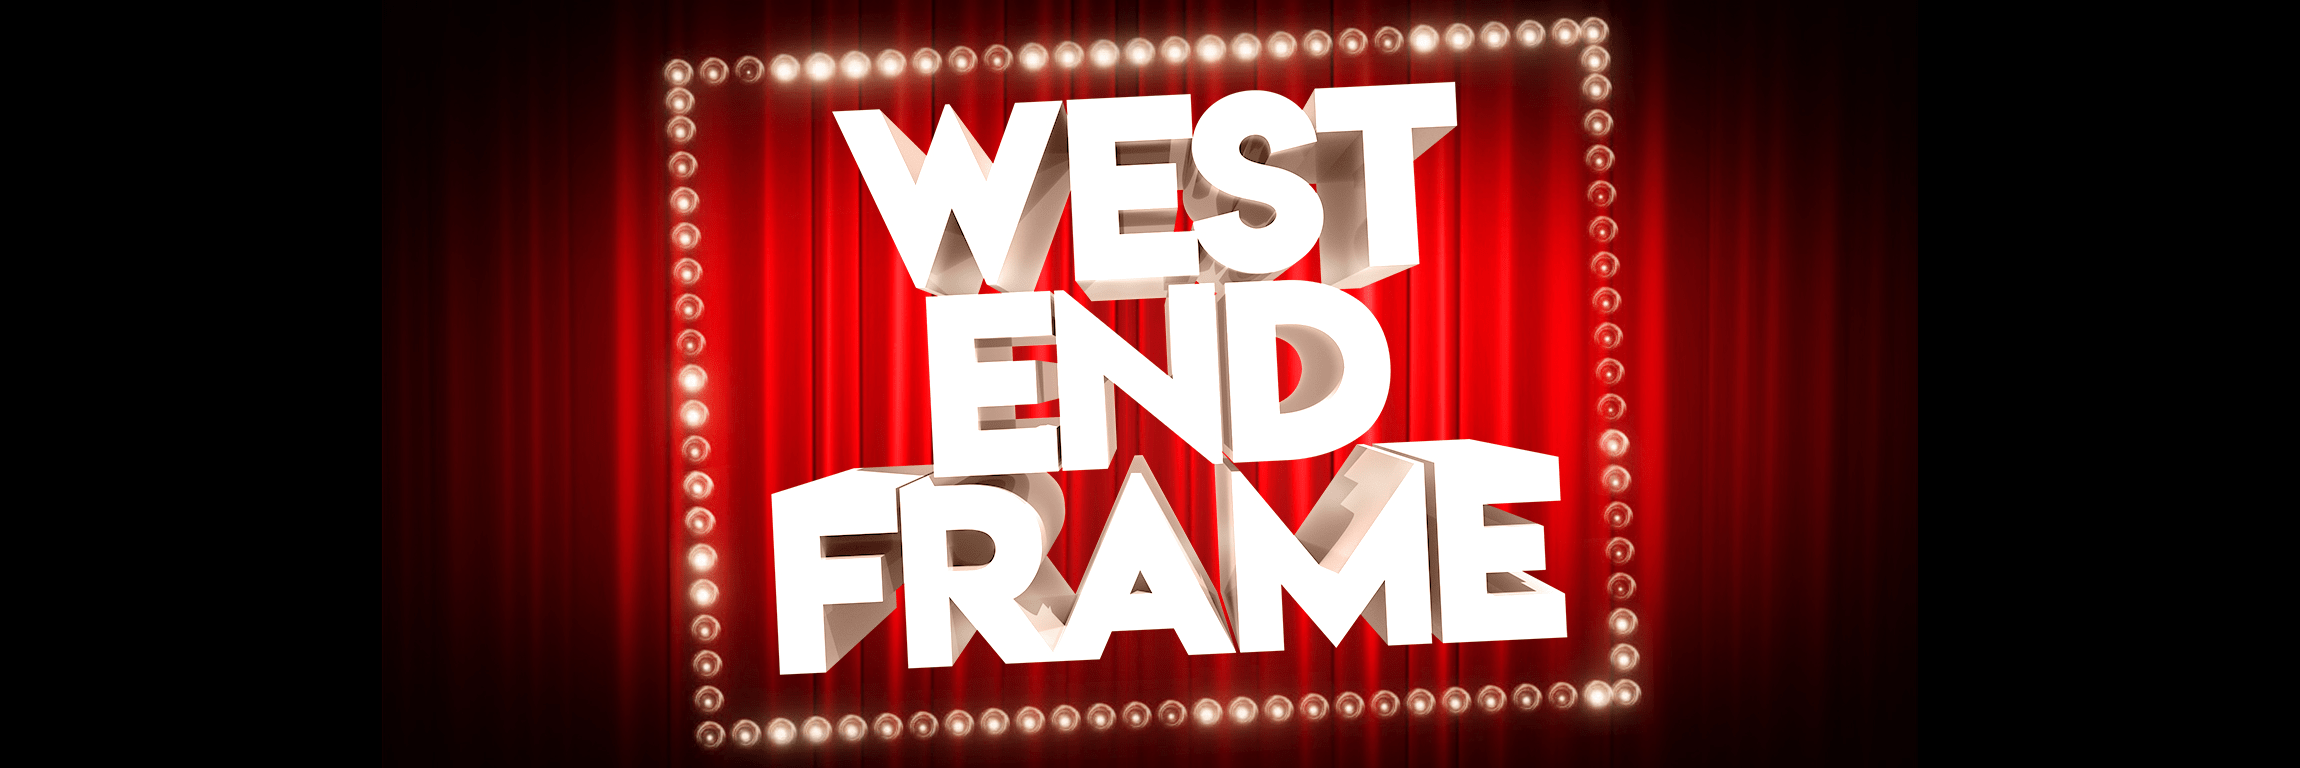 West End Frame